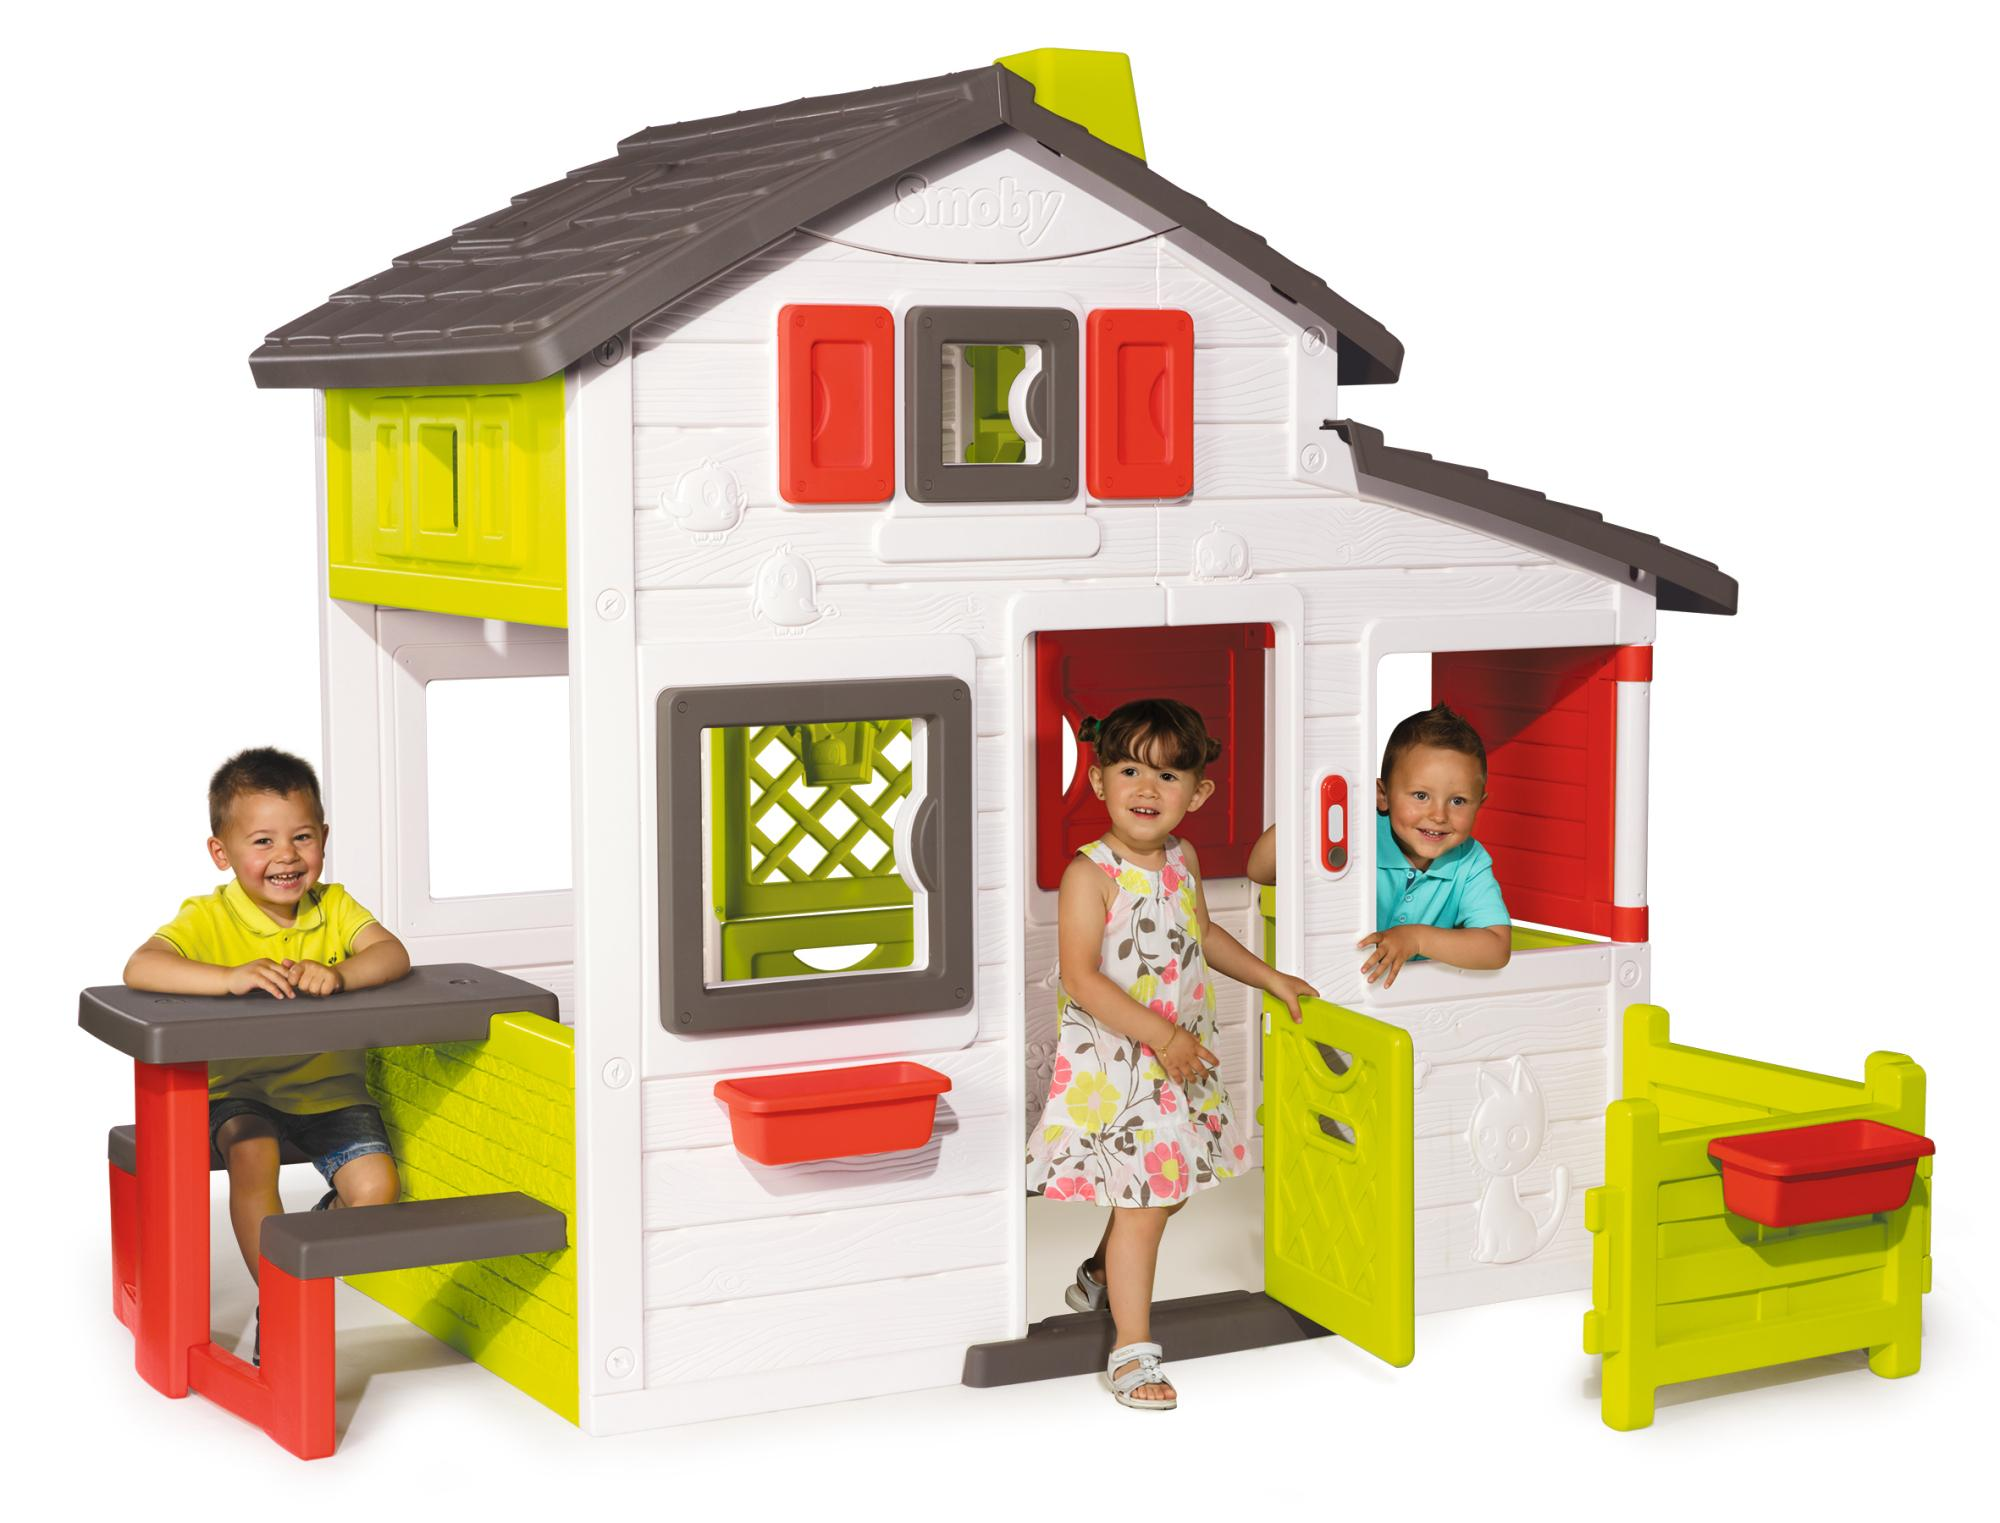 smoby 310209 friends haus spielzeug. Black Bedroom Furniture Sets. Home Design Ideas